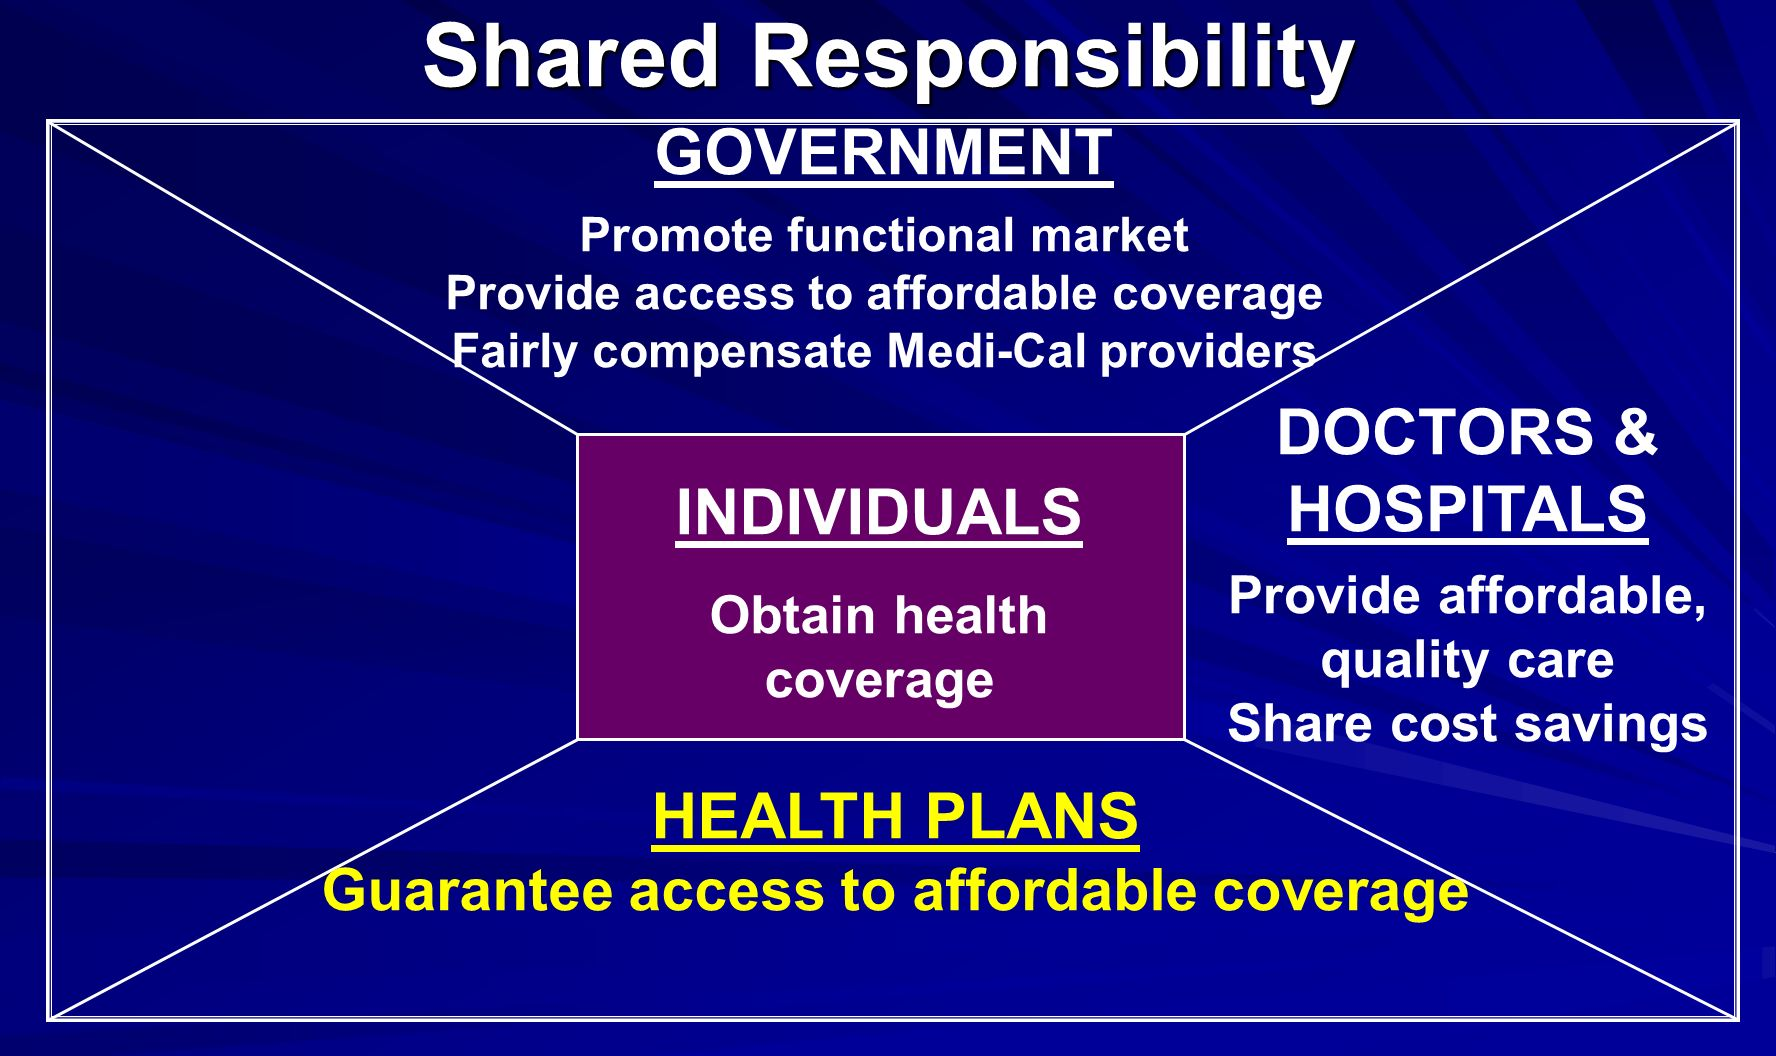 Shared Responsibility HEALTH PLANS Guarantee access to affordable coverage DOCTORS & HOSPITALS Provide affordable, quality care Share cost savings IND